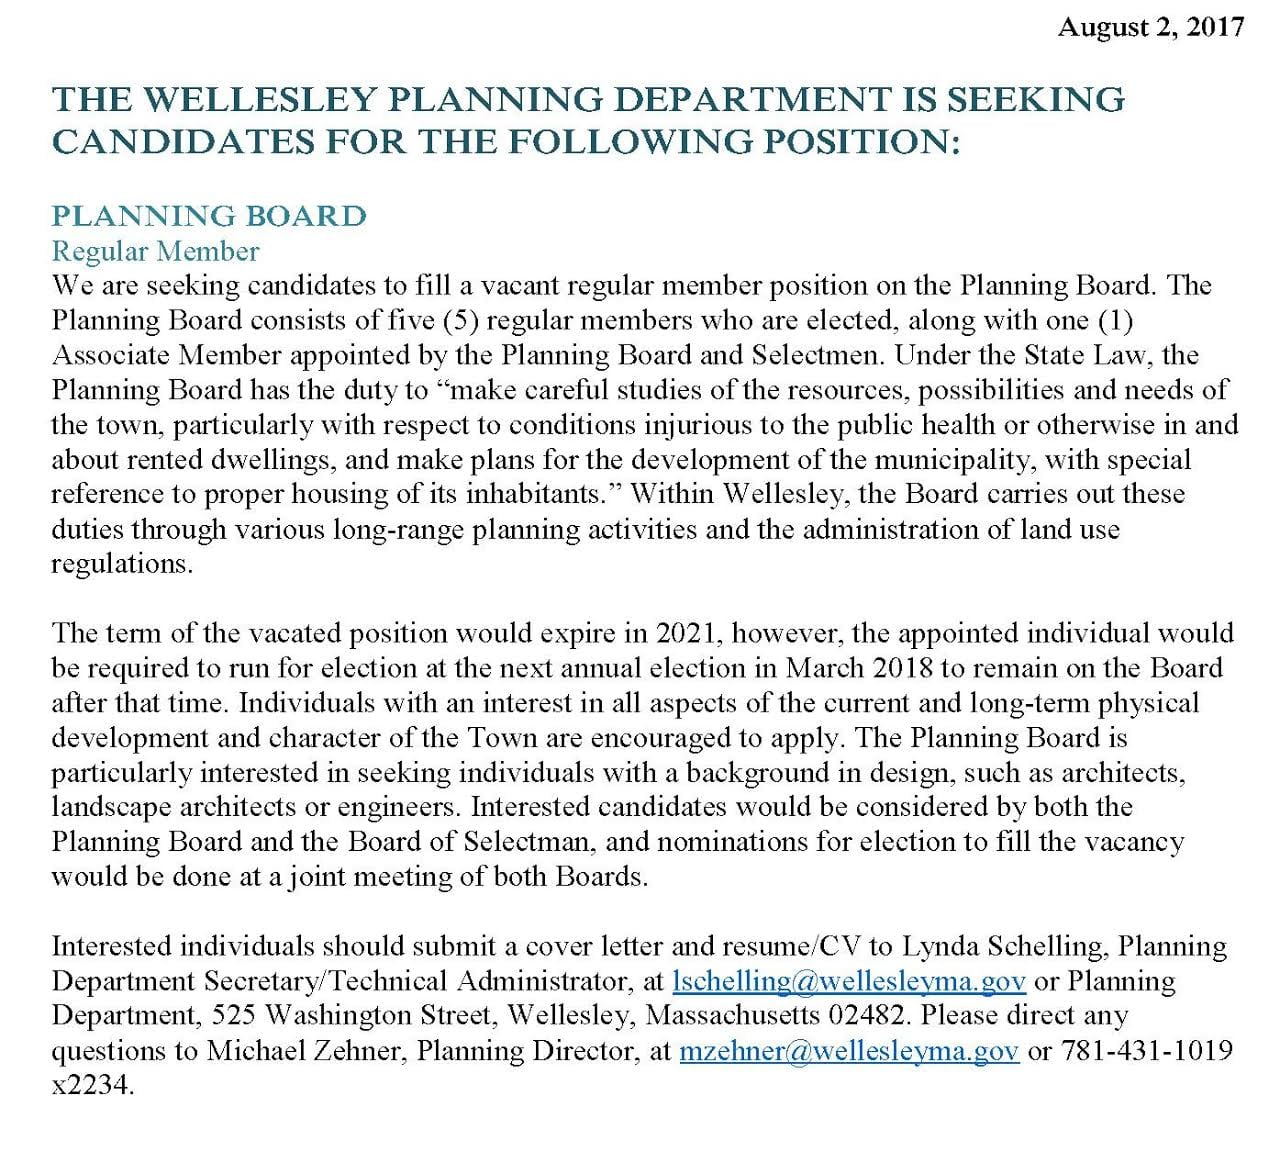 Wellesley Planning Board